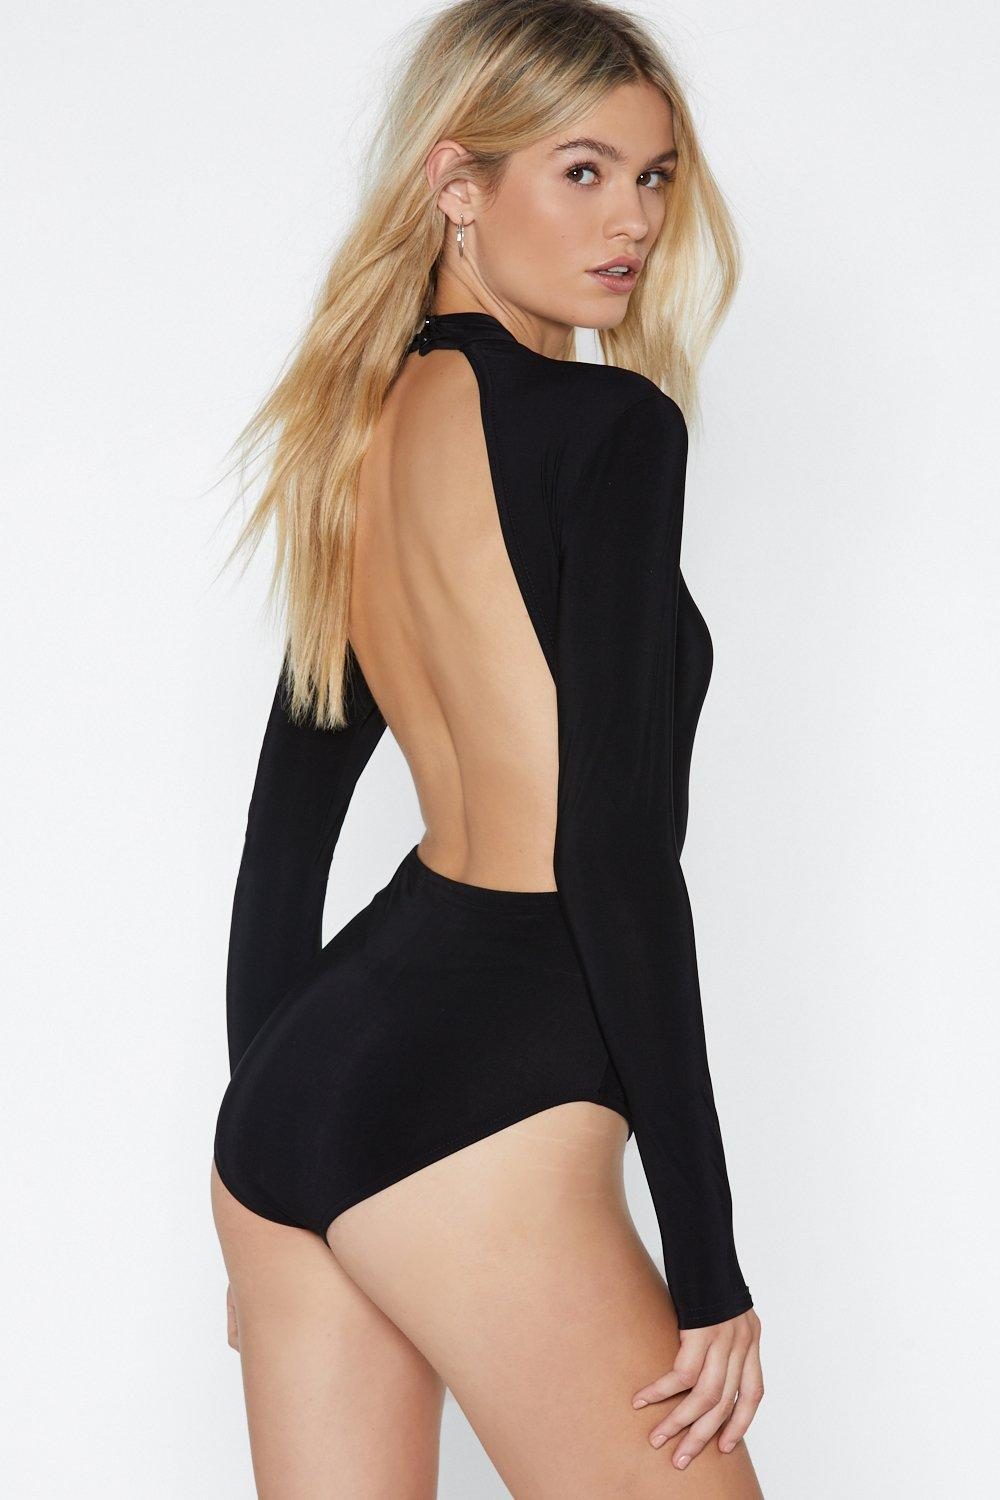 Want You Back Bodysuit by Nasty Gal